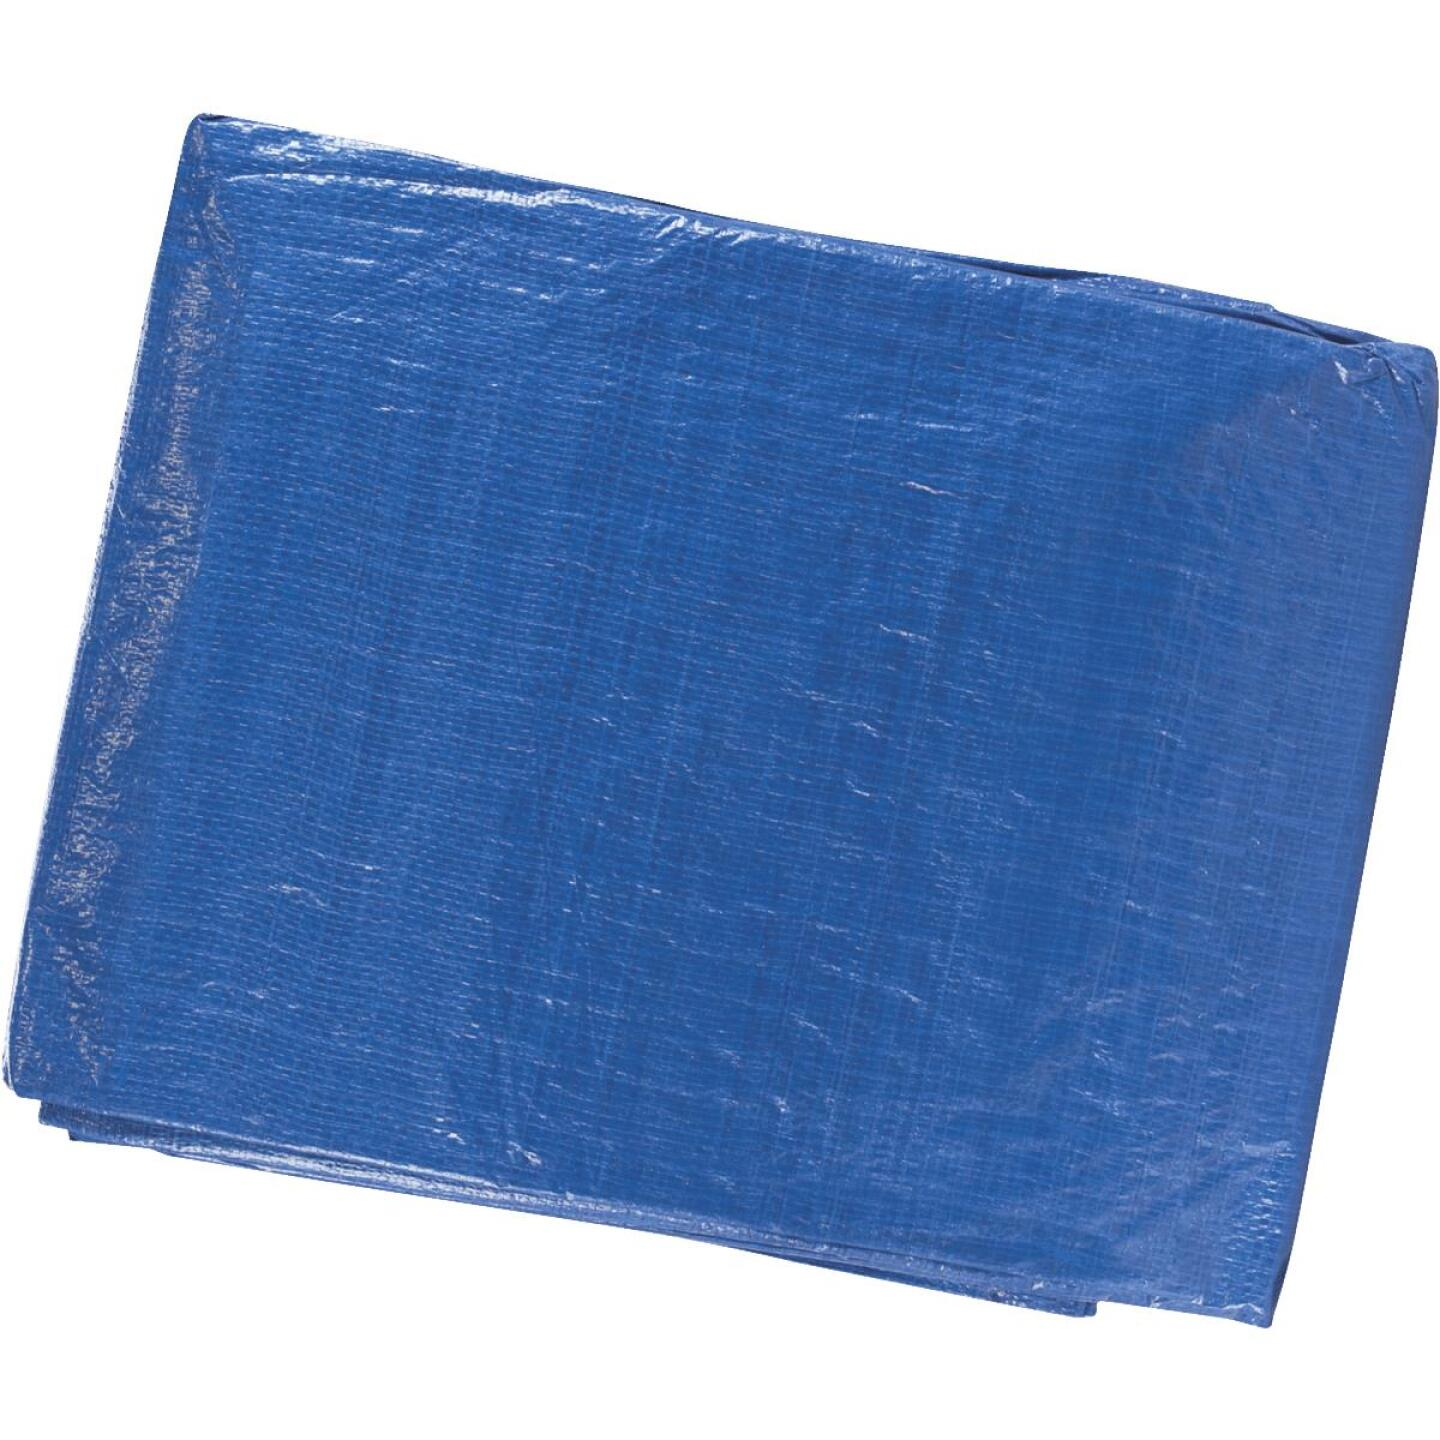 Do it 16 Ft x 20 Ft Blue Medium Duty Tarp Image 3